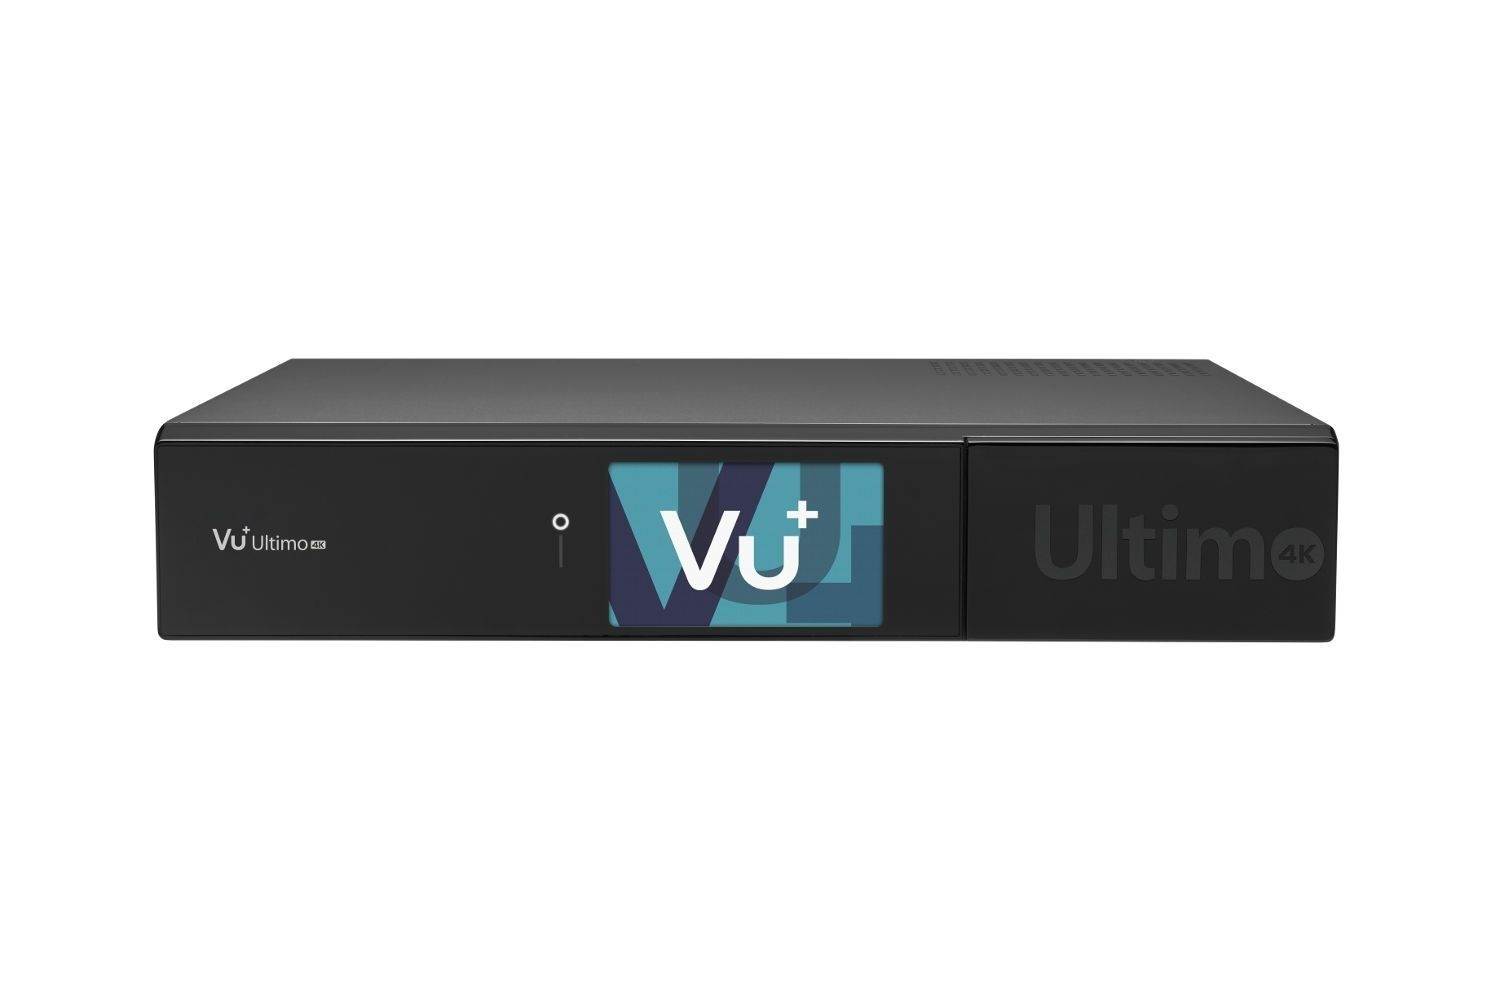 VU+ Ultimo 4K 2x DVB-C FBC / 1x DVB-C/T2 Dual Tuner 4 TB HDD Linux Receiver UHD 2160p